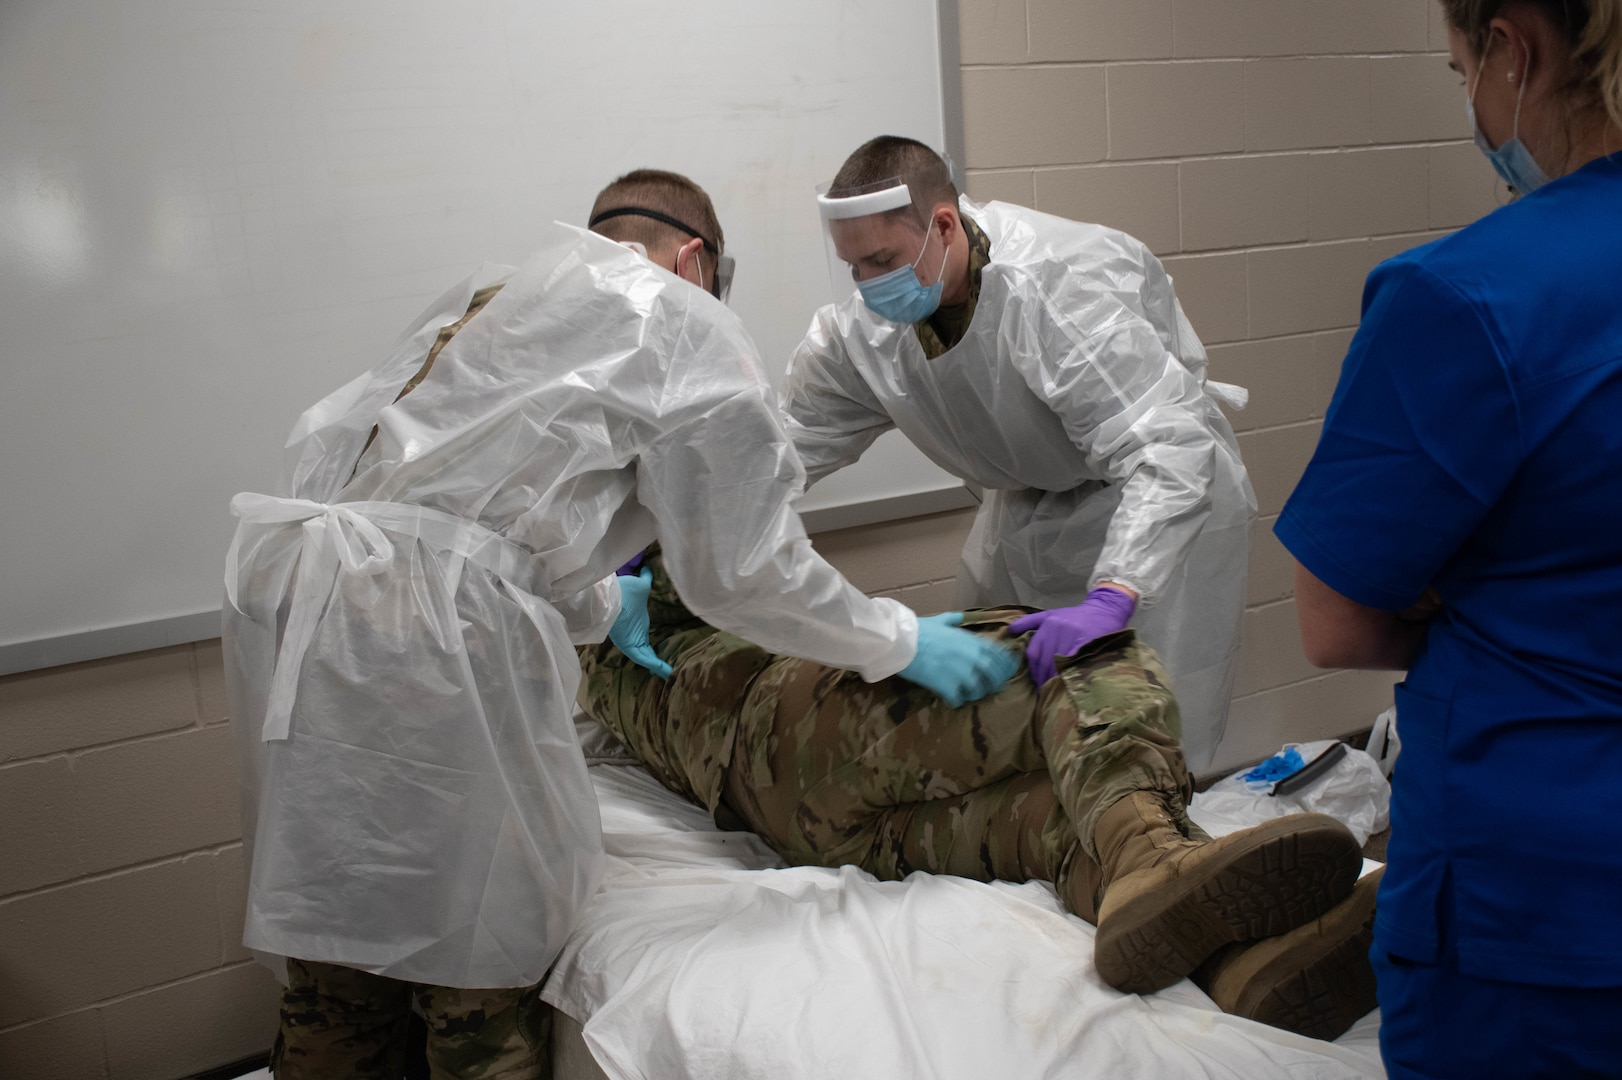 Soldiers and Airmen from the Minnesota National Guard participated in temporary nurse's aide training at Camp Ripley, Minnesota, on Dec. 3, 2020, to prepare for a mission to assist at long-term care facilities as part of the state's COVID-19 response.